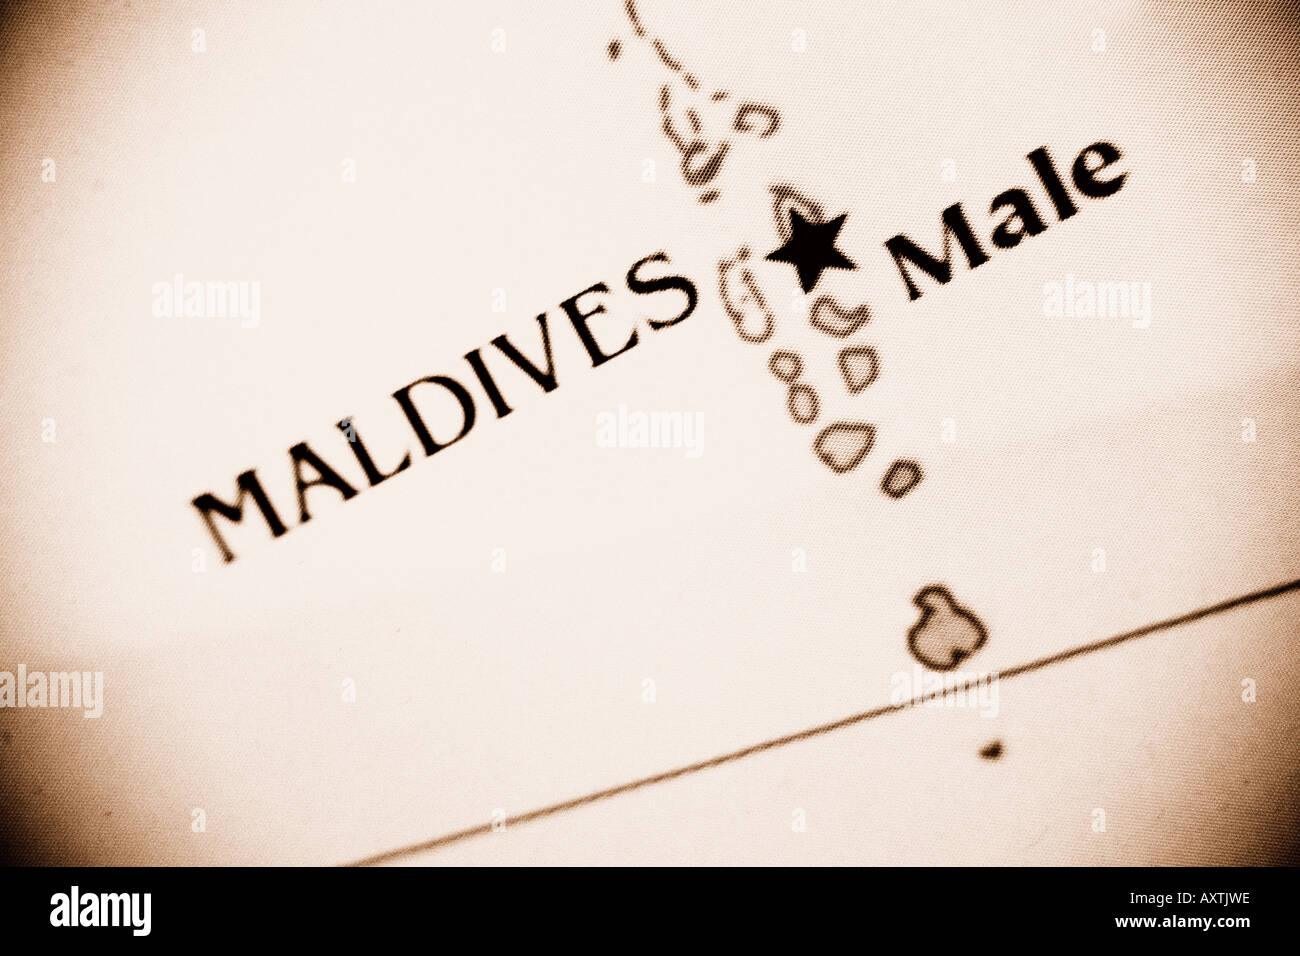 Current map of the Maldives Islands located southwest of the ... on australia map, seychelles map, bora bora, india map, japan map, pakistan map, germany map, philippines map, mexico map, indian ocean, lebanon map, tonga island map, maldives atoll map, sri lanka, world map, indian ocean map, hong kong map, malaysia map, belize map, java island map, celebes island map, myanmar map, taiwan map,